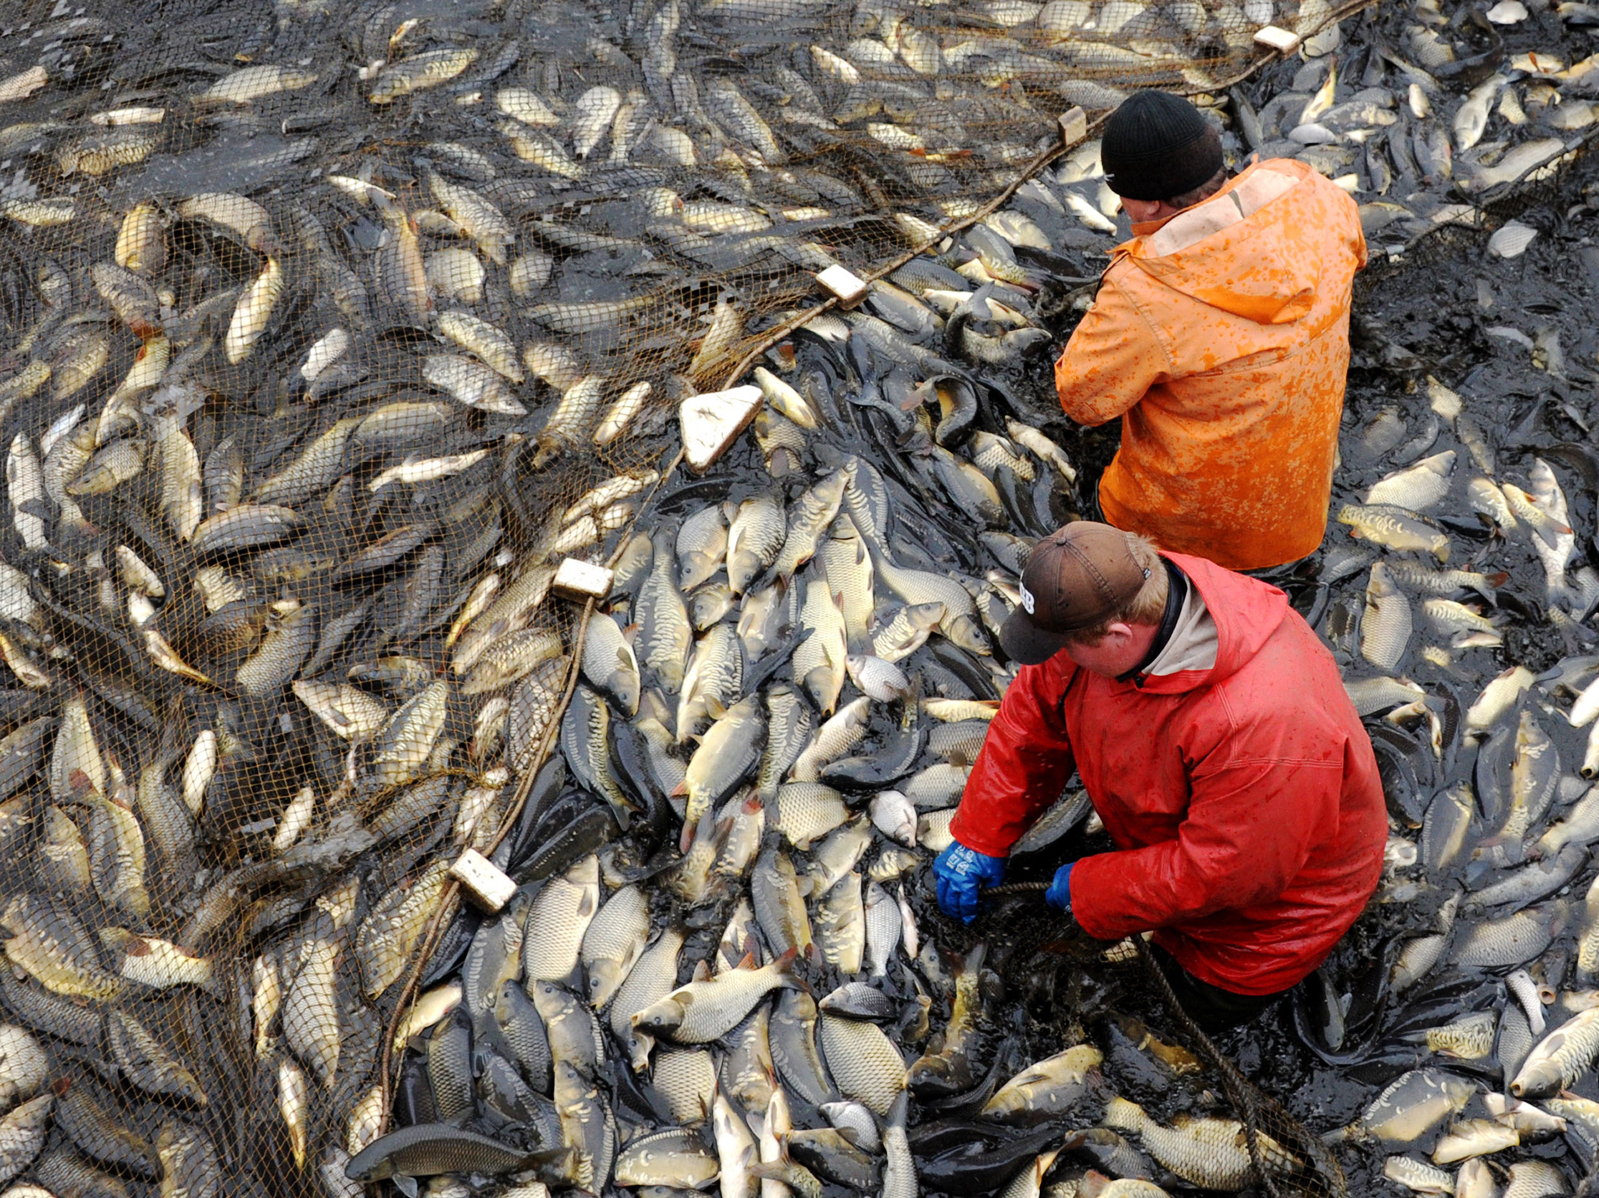 Can Farmed Fish Feed The World Without Destroying The Environment?